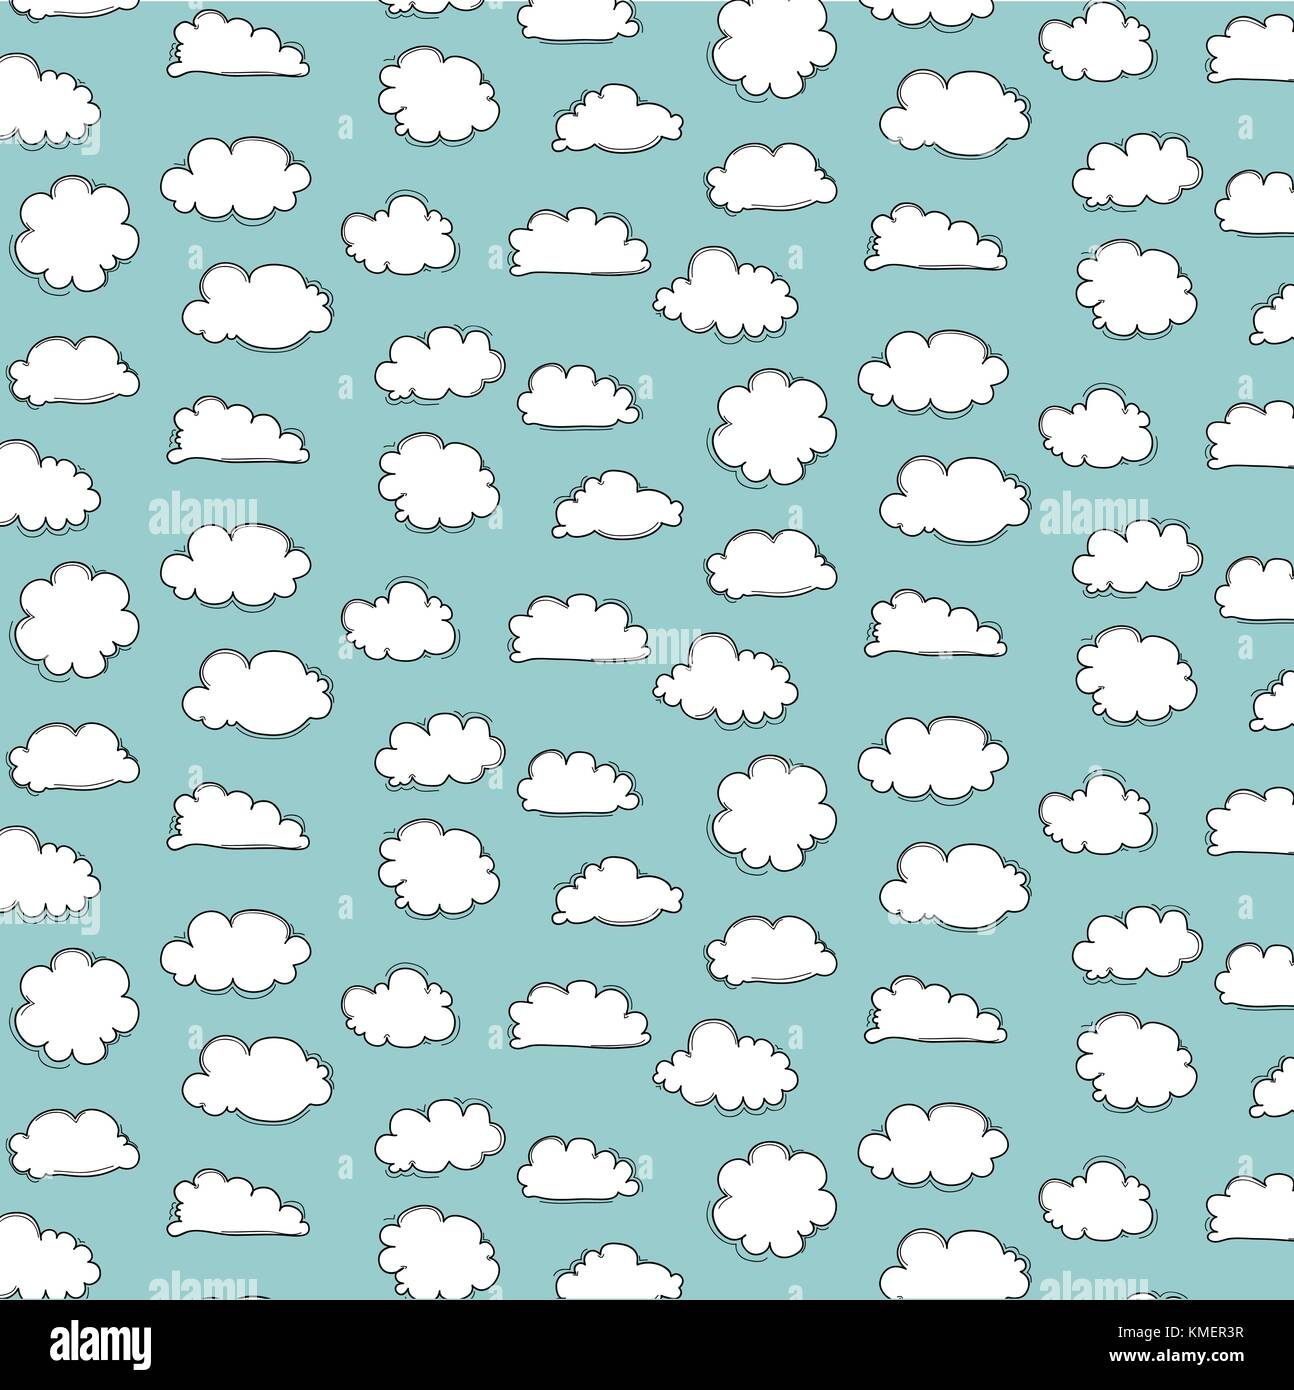 Cute Cloud Patterns With Blue Background Stock Vector Art